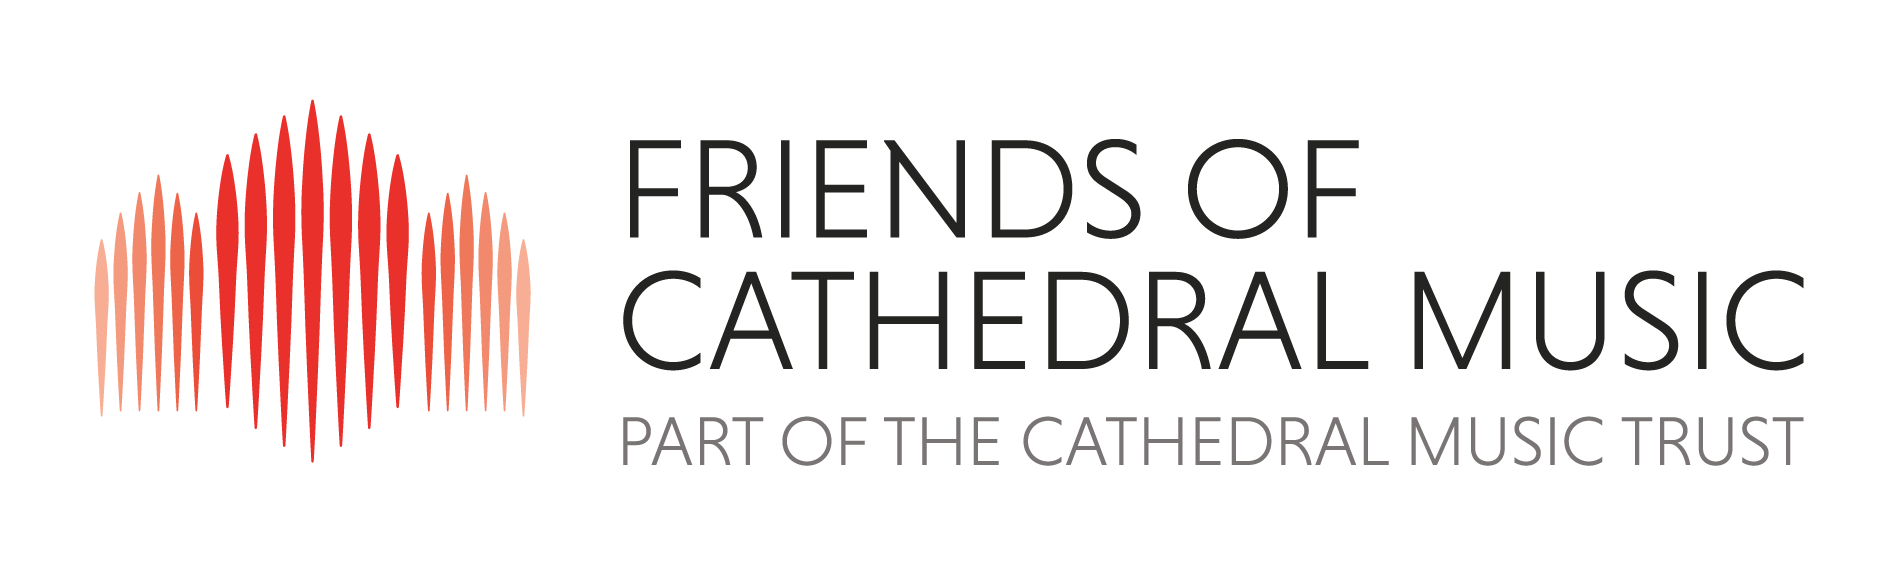 Friends of Cathedral Music logo